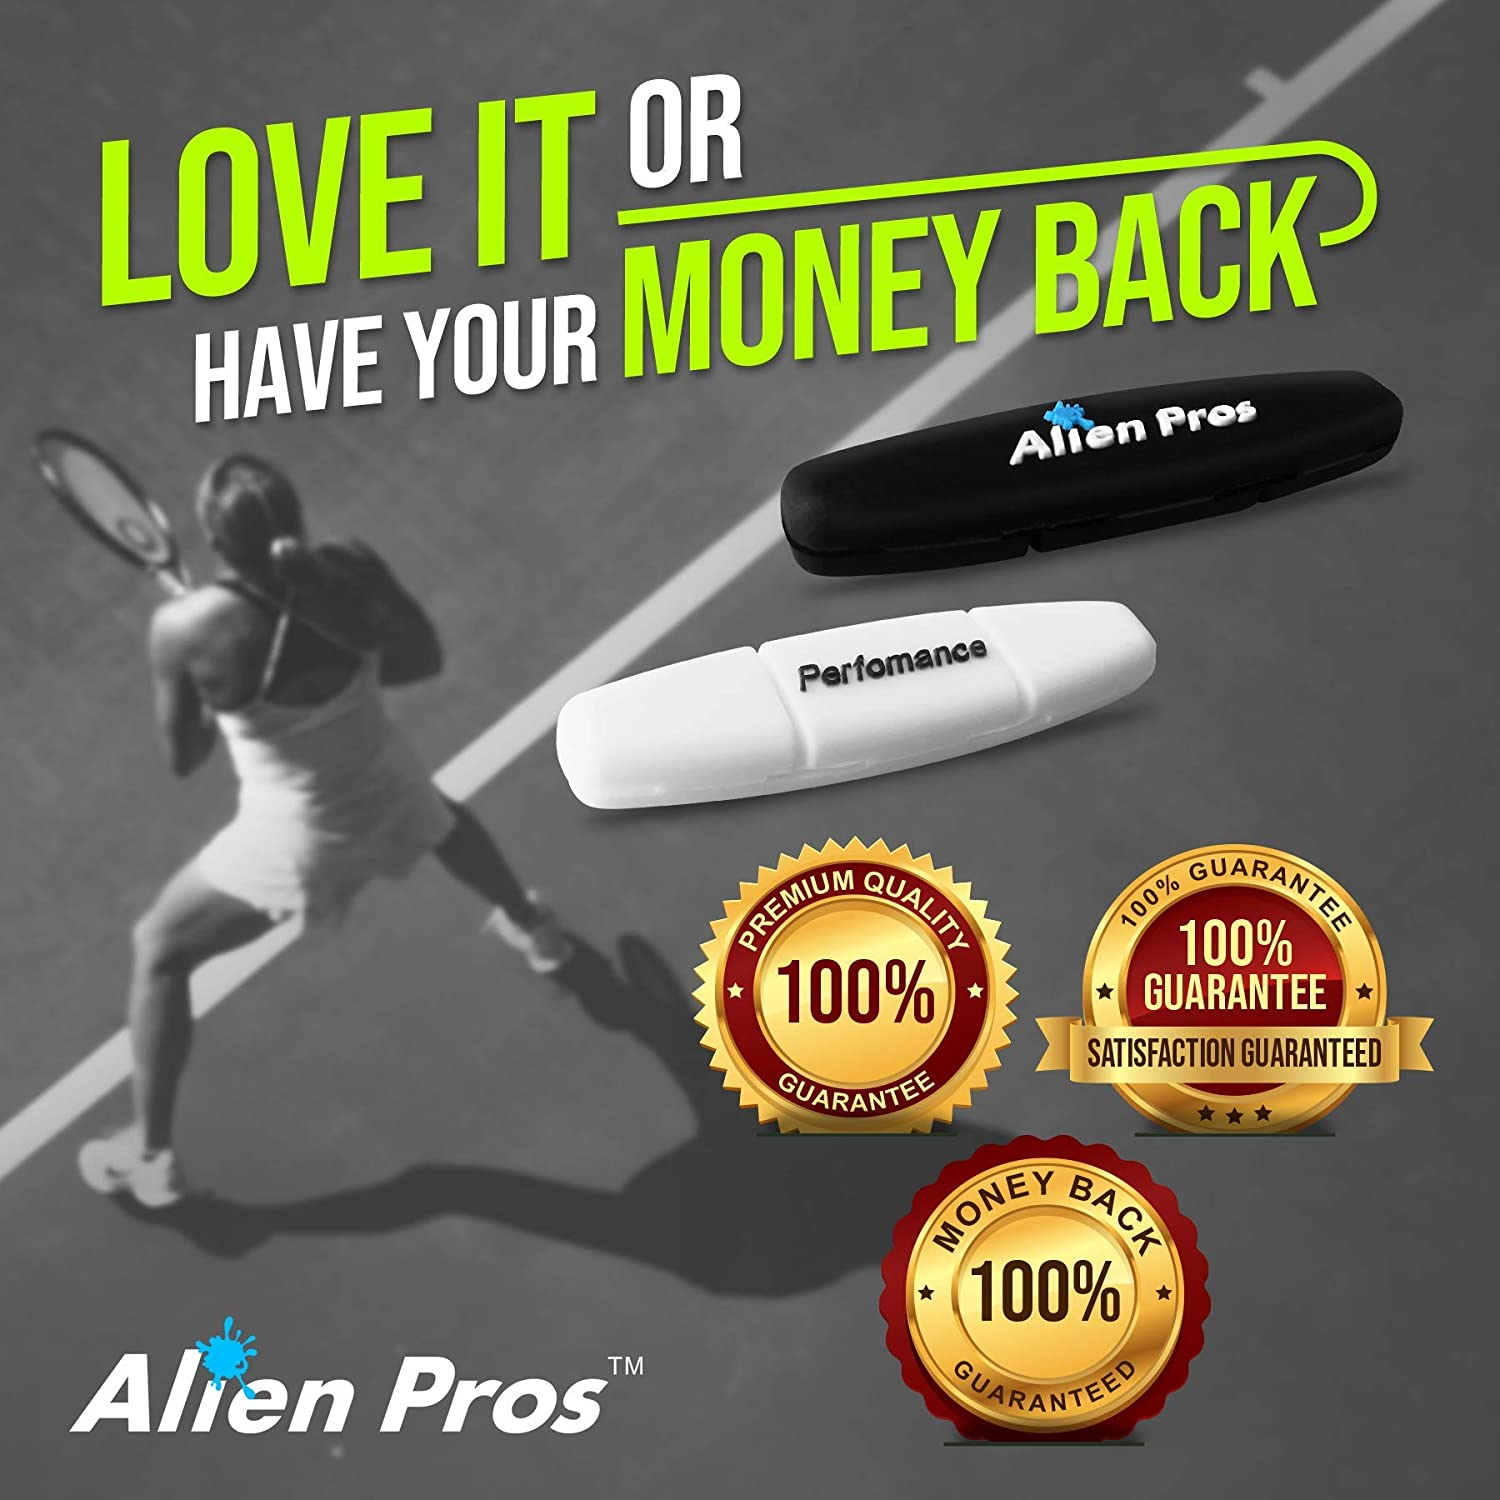 Alien Pros Performance Tennis Racket Dampeners (3 Pack, Black) - Perfect Tennis Shock Absorbers stabilize Your Strings for Optimal Performance - ...